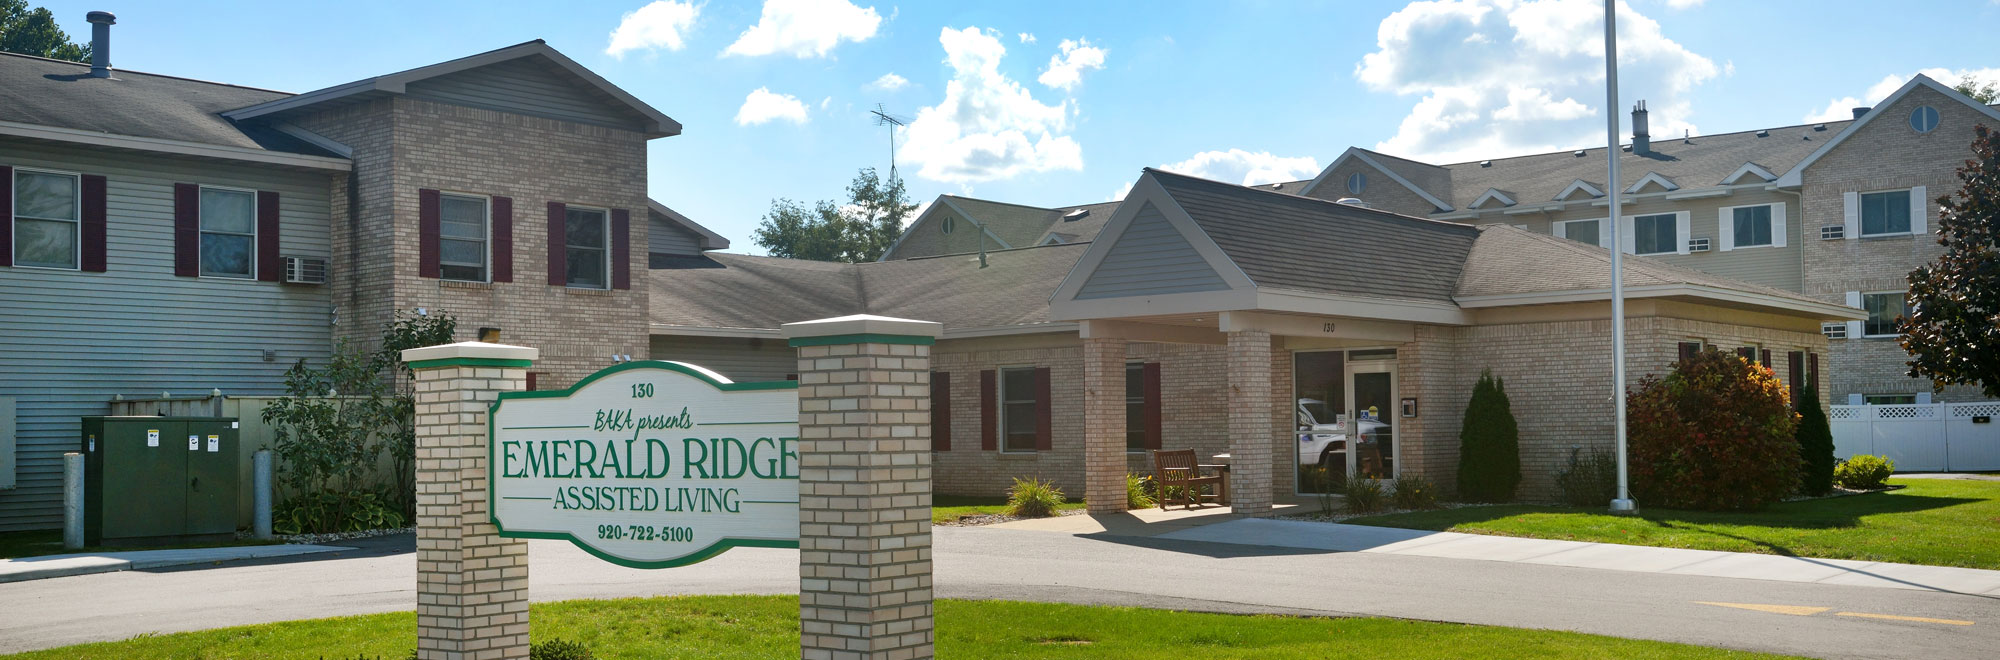 Emerald Ridge Assisted Living